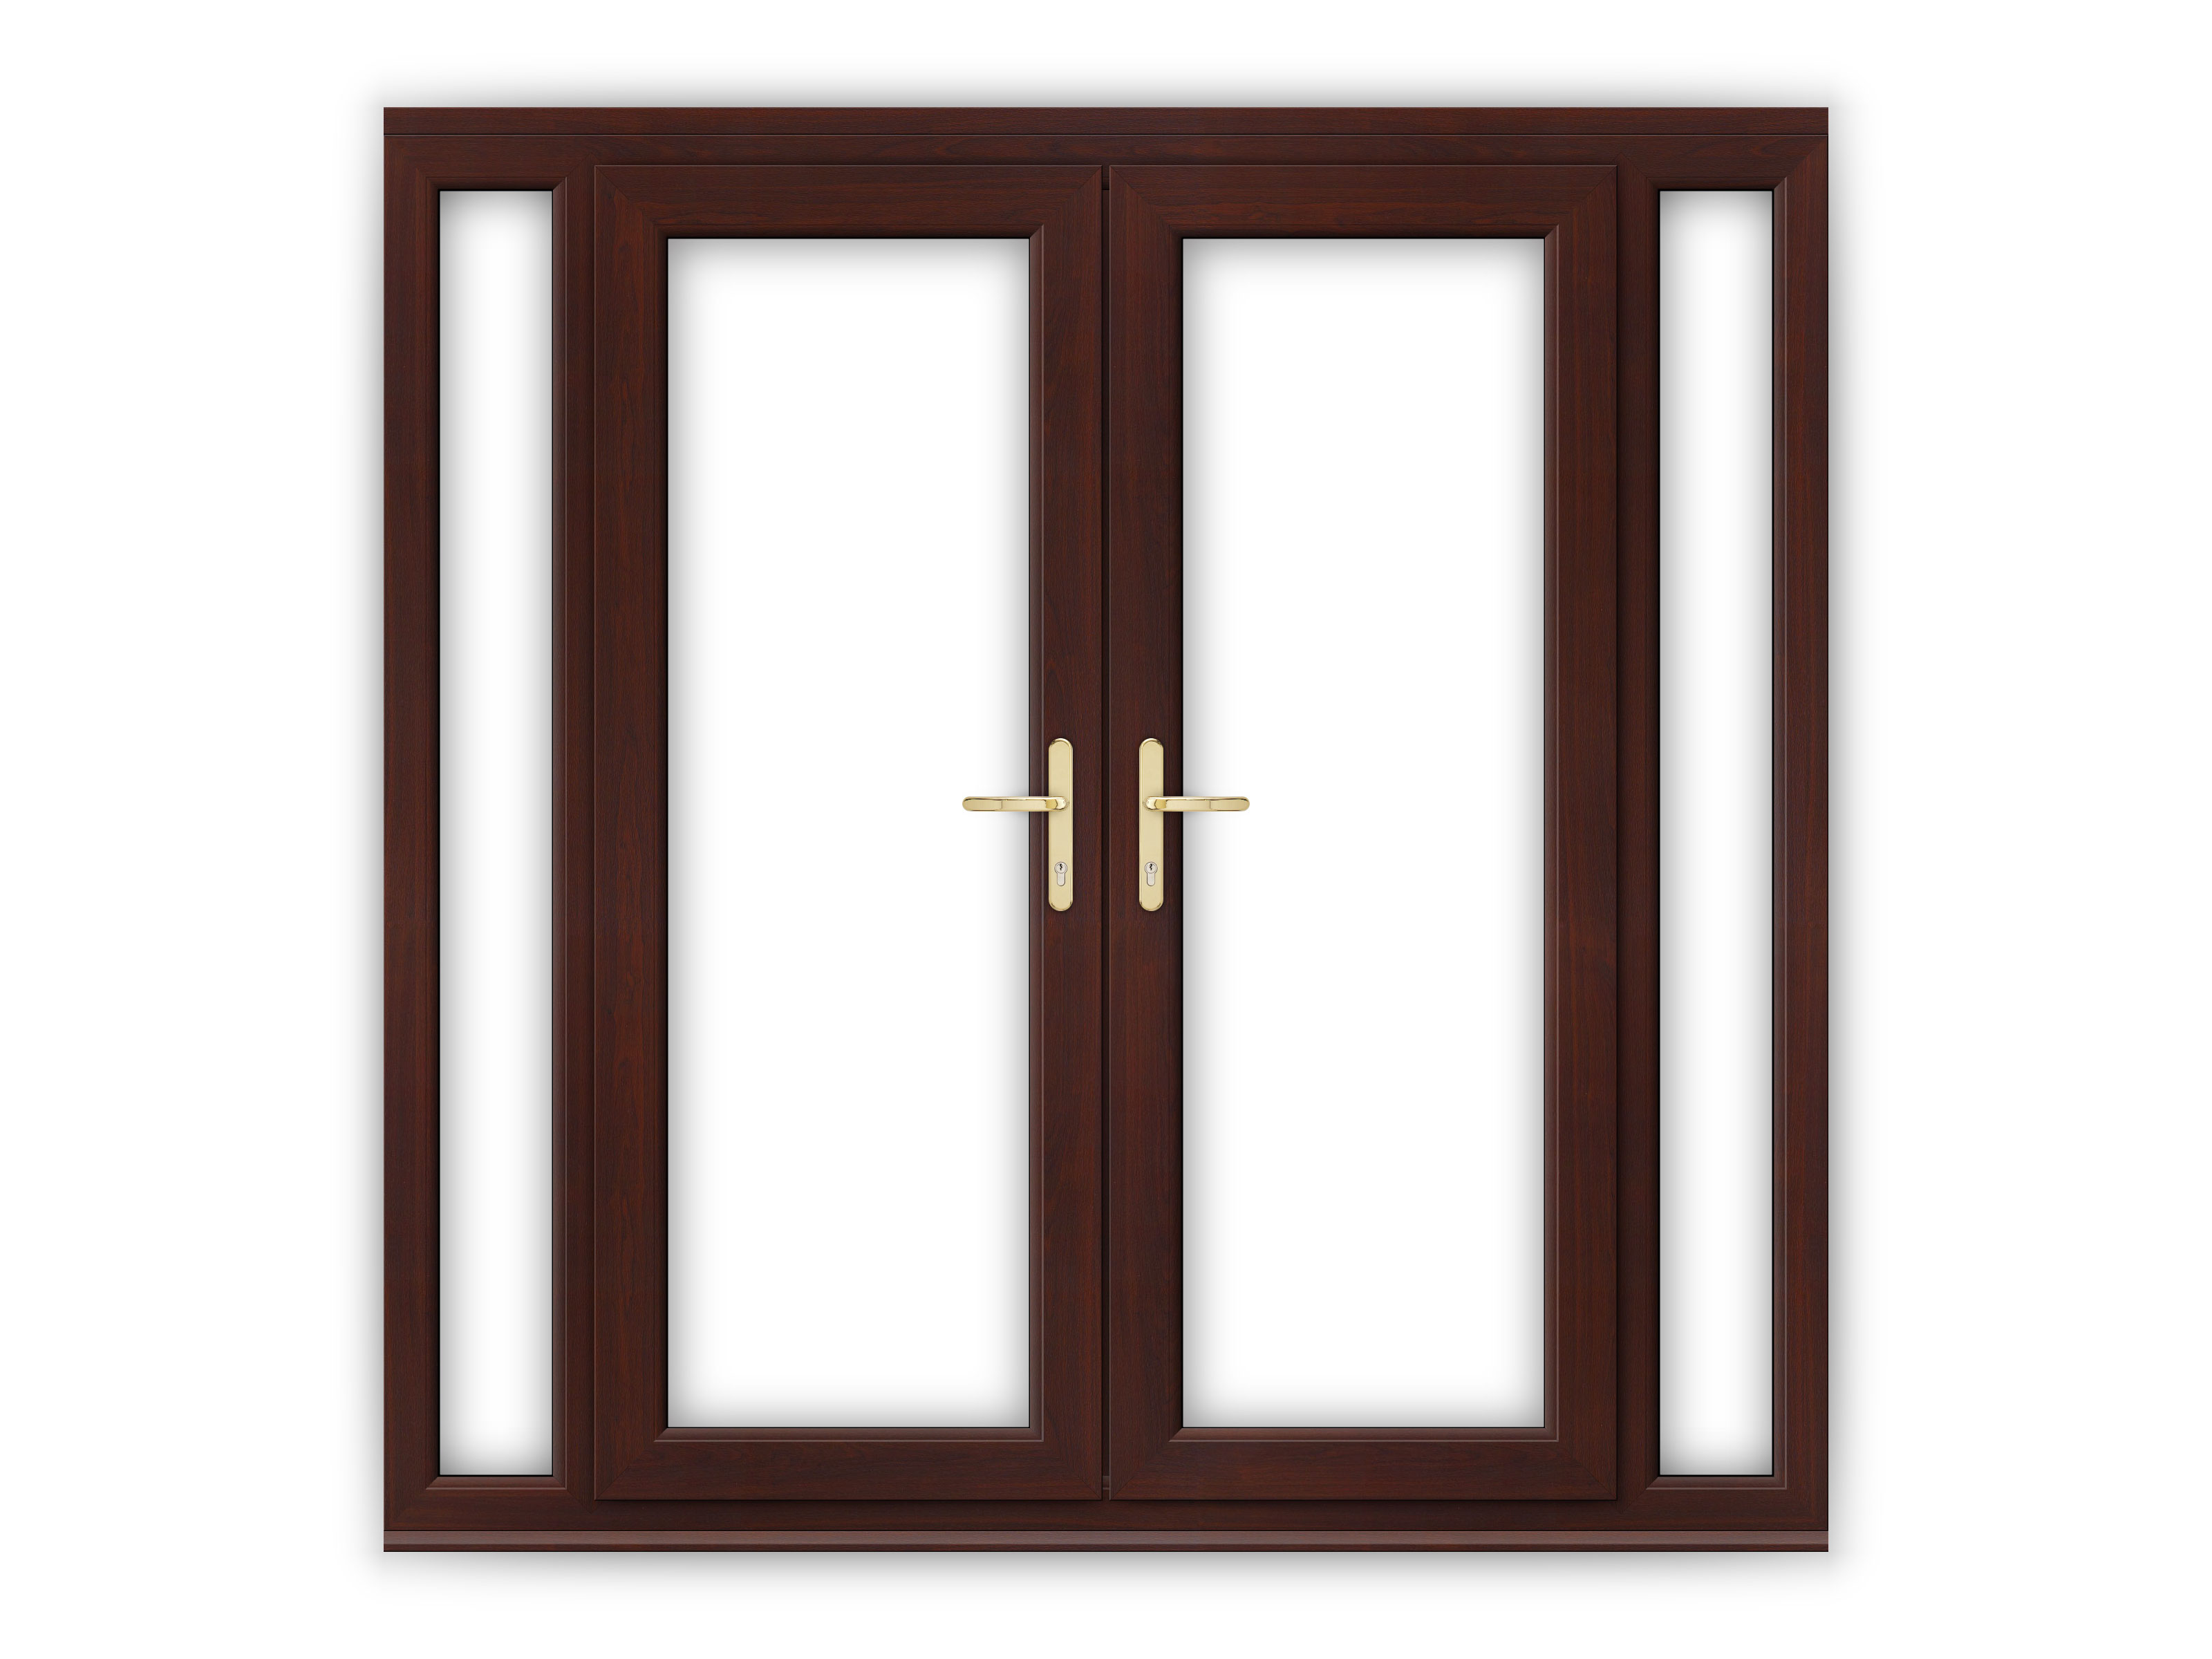 5ft rosewood upvc french doors with narrow side panels for Narrow french patio doors